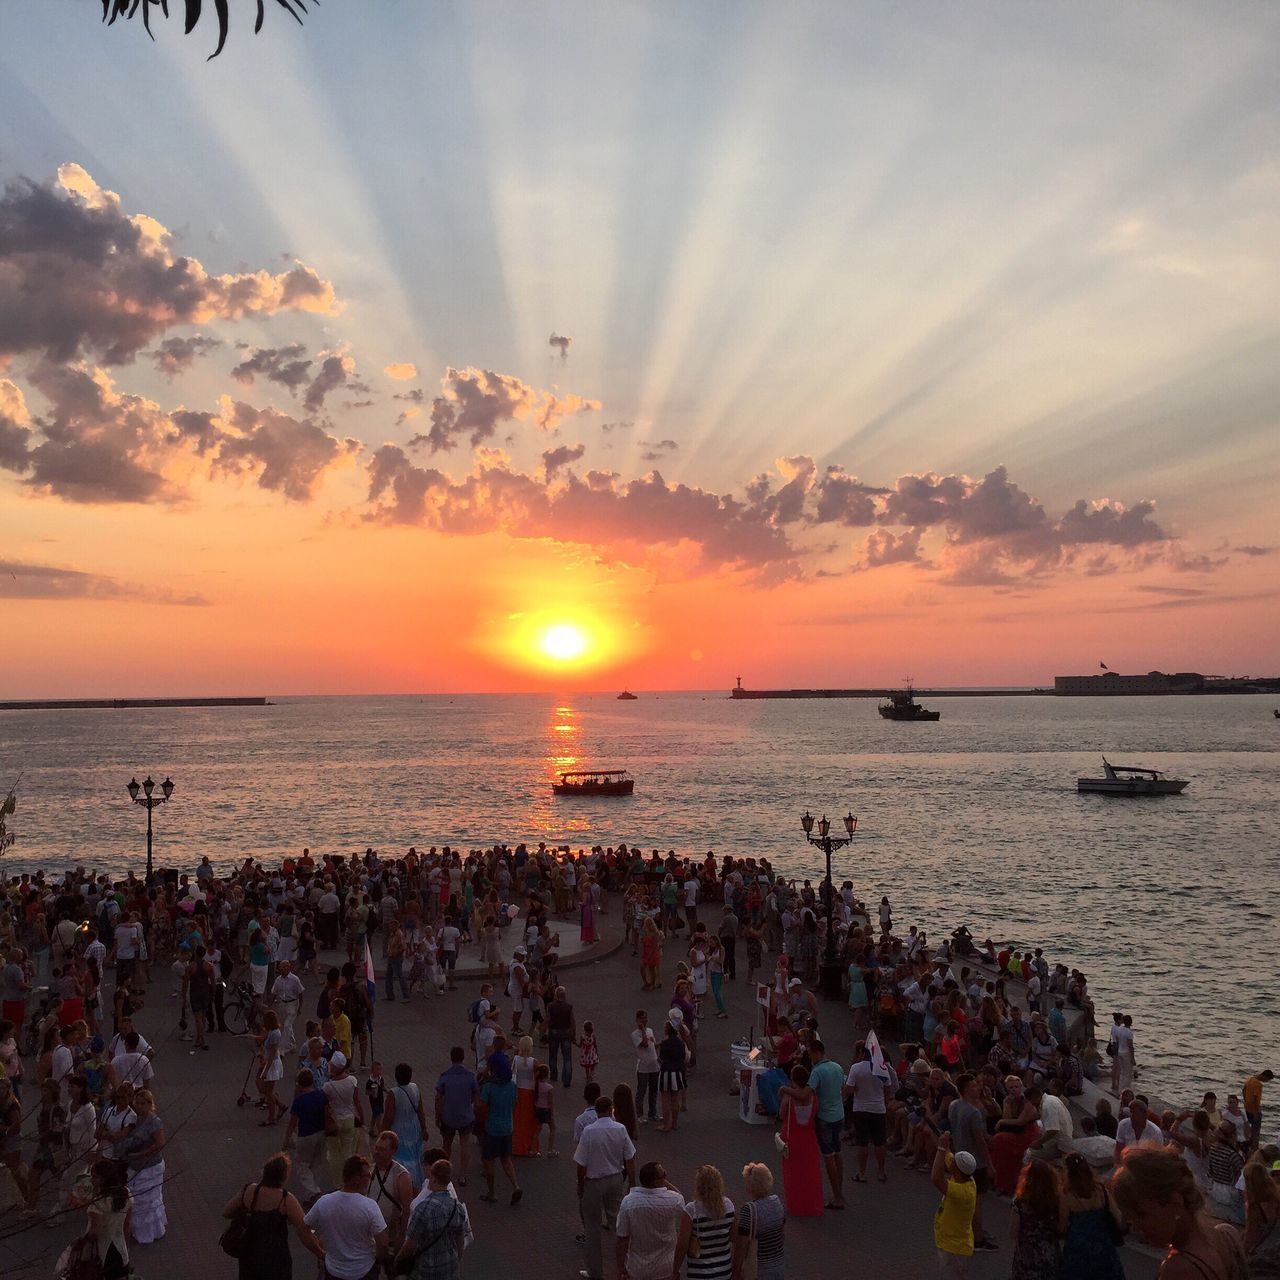 sea, sunset, beach, horizon over water, water, large group of people, sun, beauty in nature, nature, orange color, sky, scenics, leisure activity, real people, lifestyles, outdoors, sand, cloud - sky, women, vacations, crowd, people